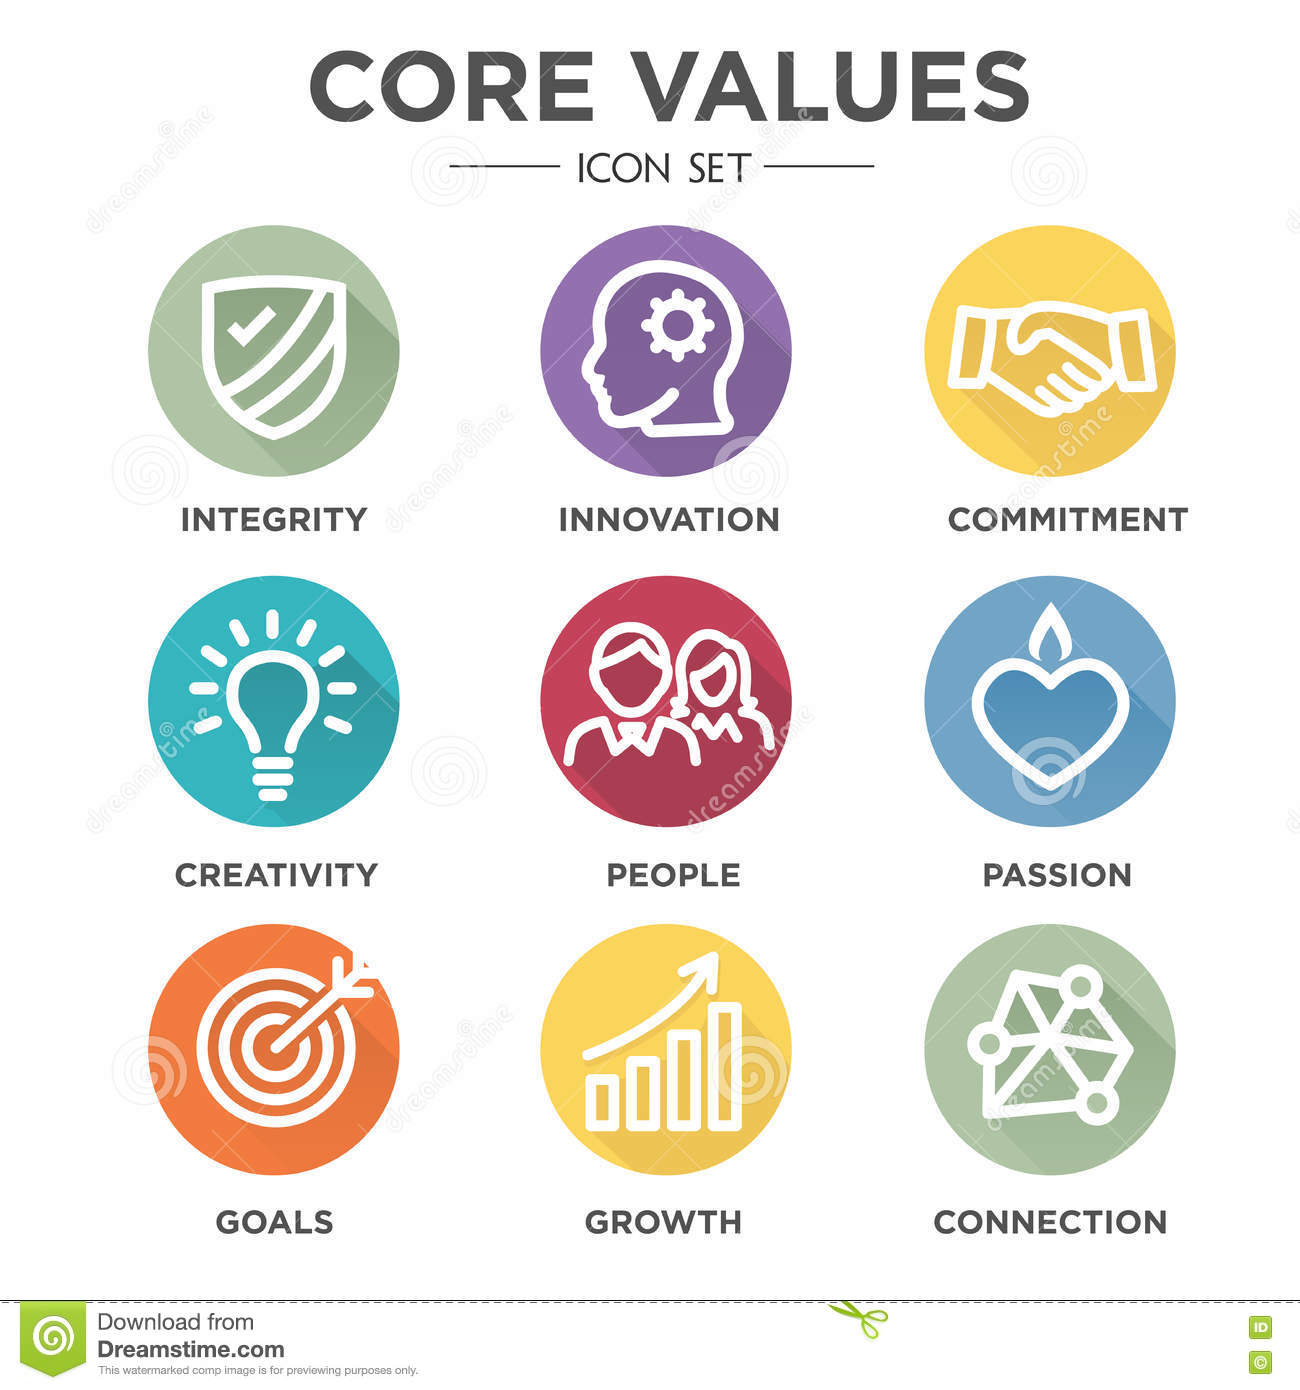 Vision And Mission Statements Auto Electrical Wiring Diagram Club Car Gcor Core Values Icons Stock Image Of Honor Icon Focus